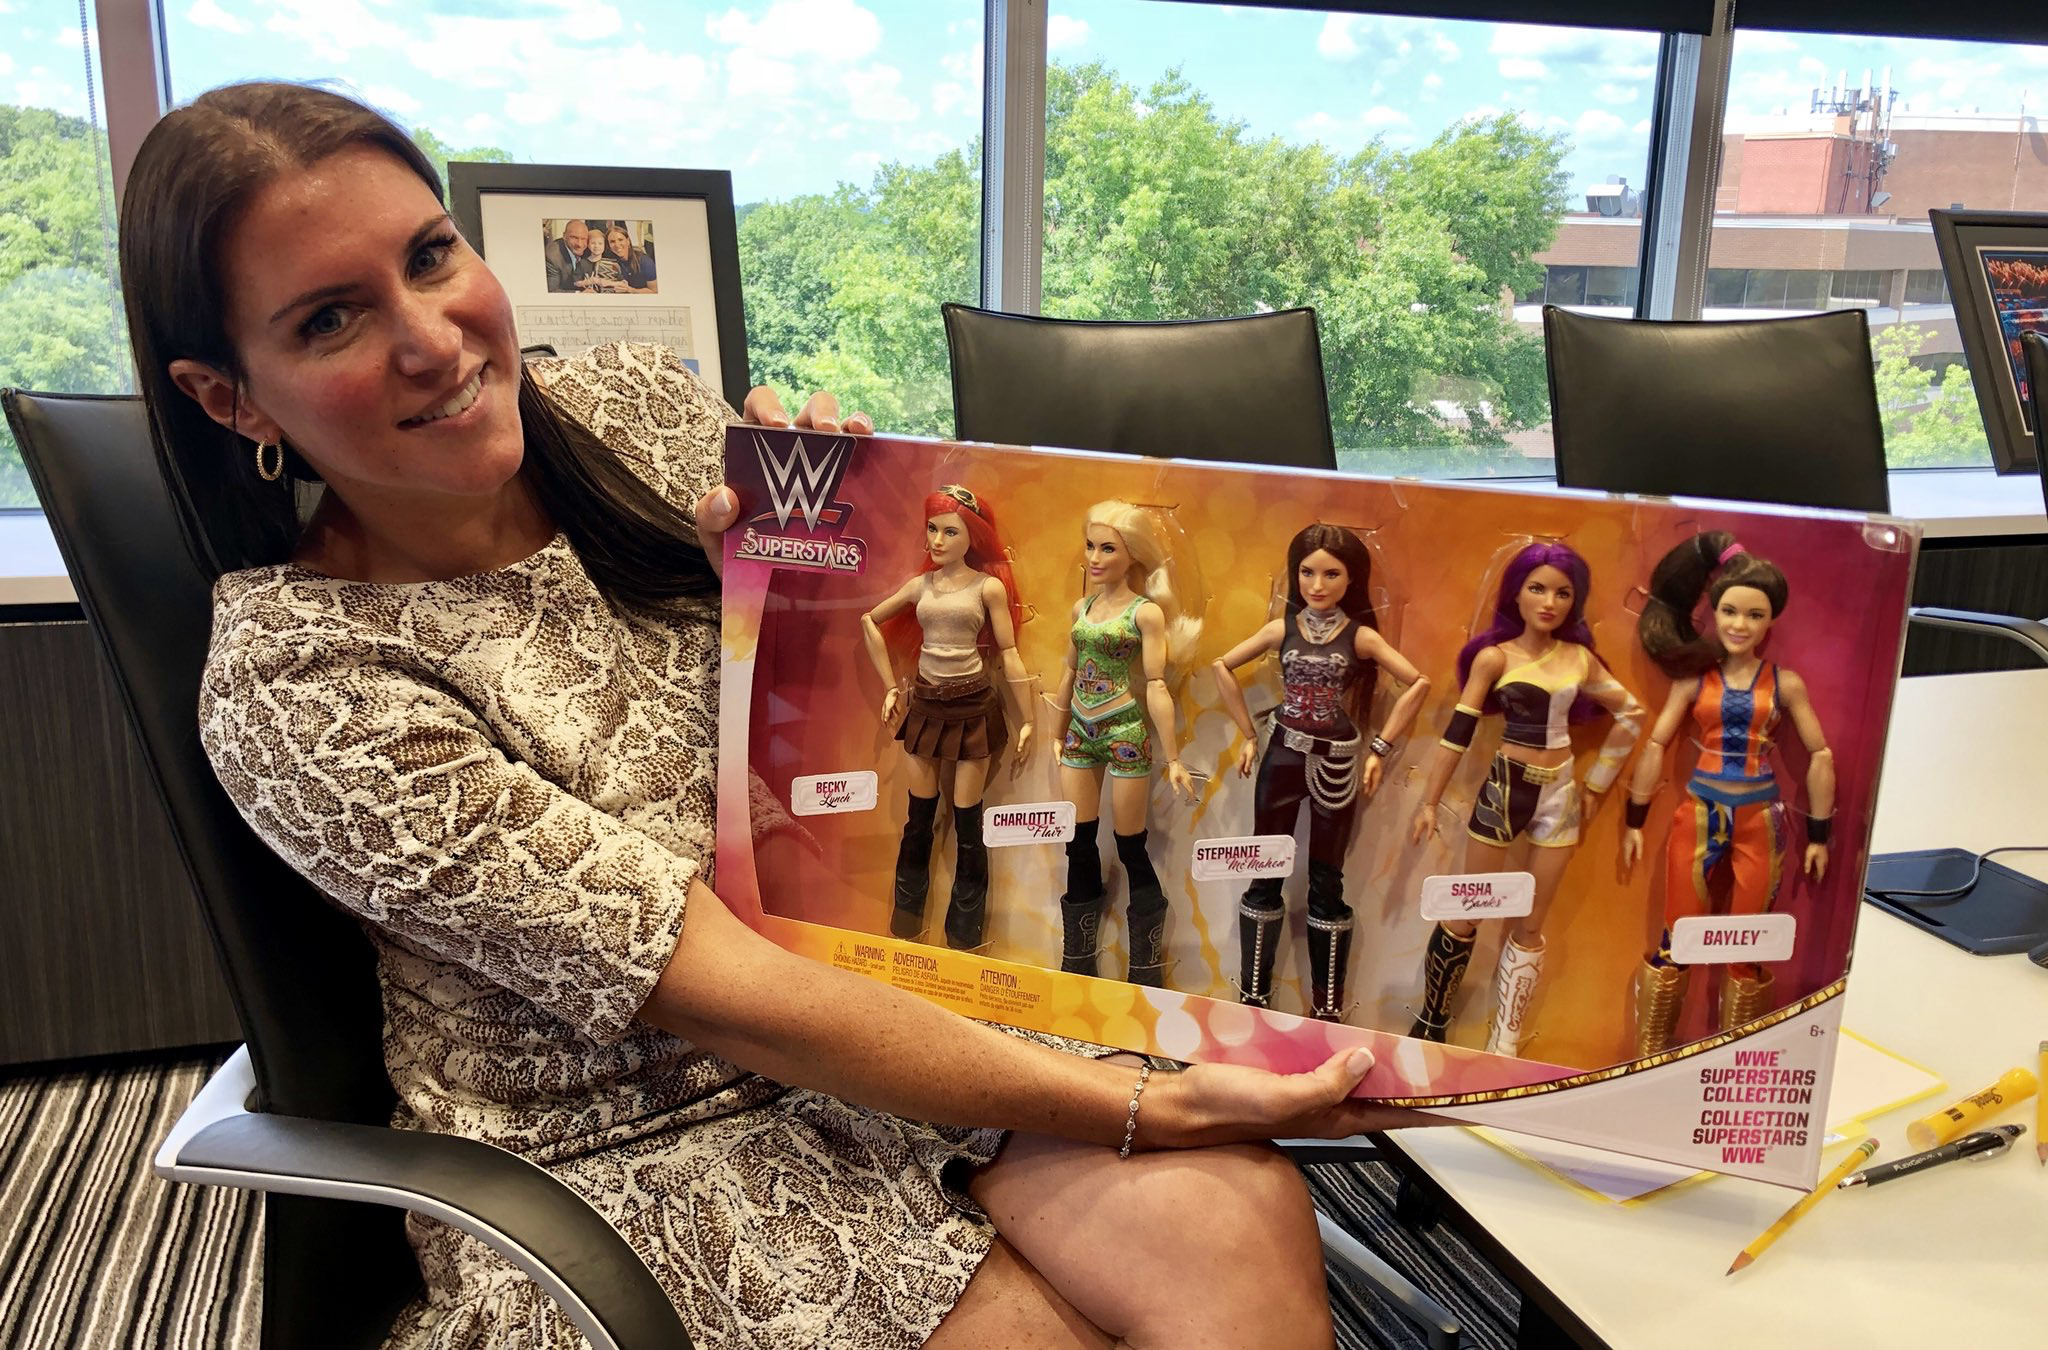 WWE Superstars Collection Fashion Dolls 5 pack